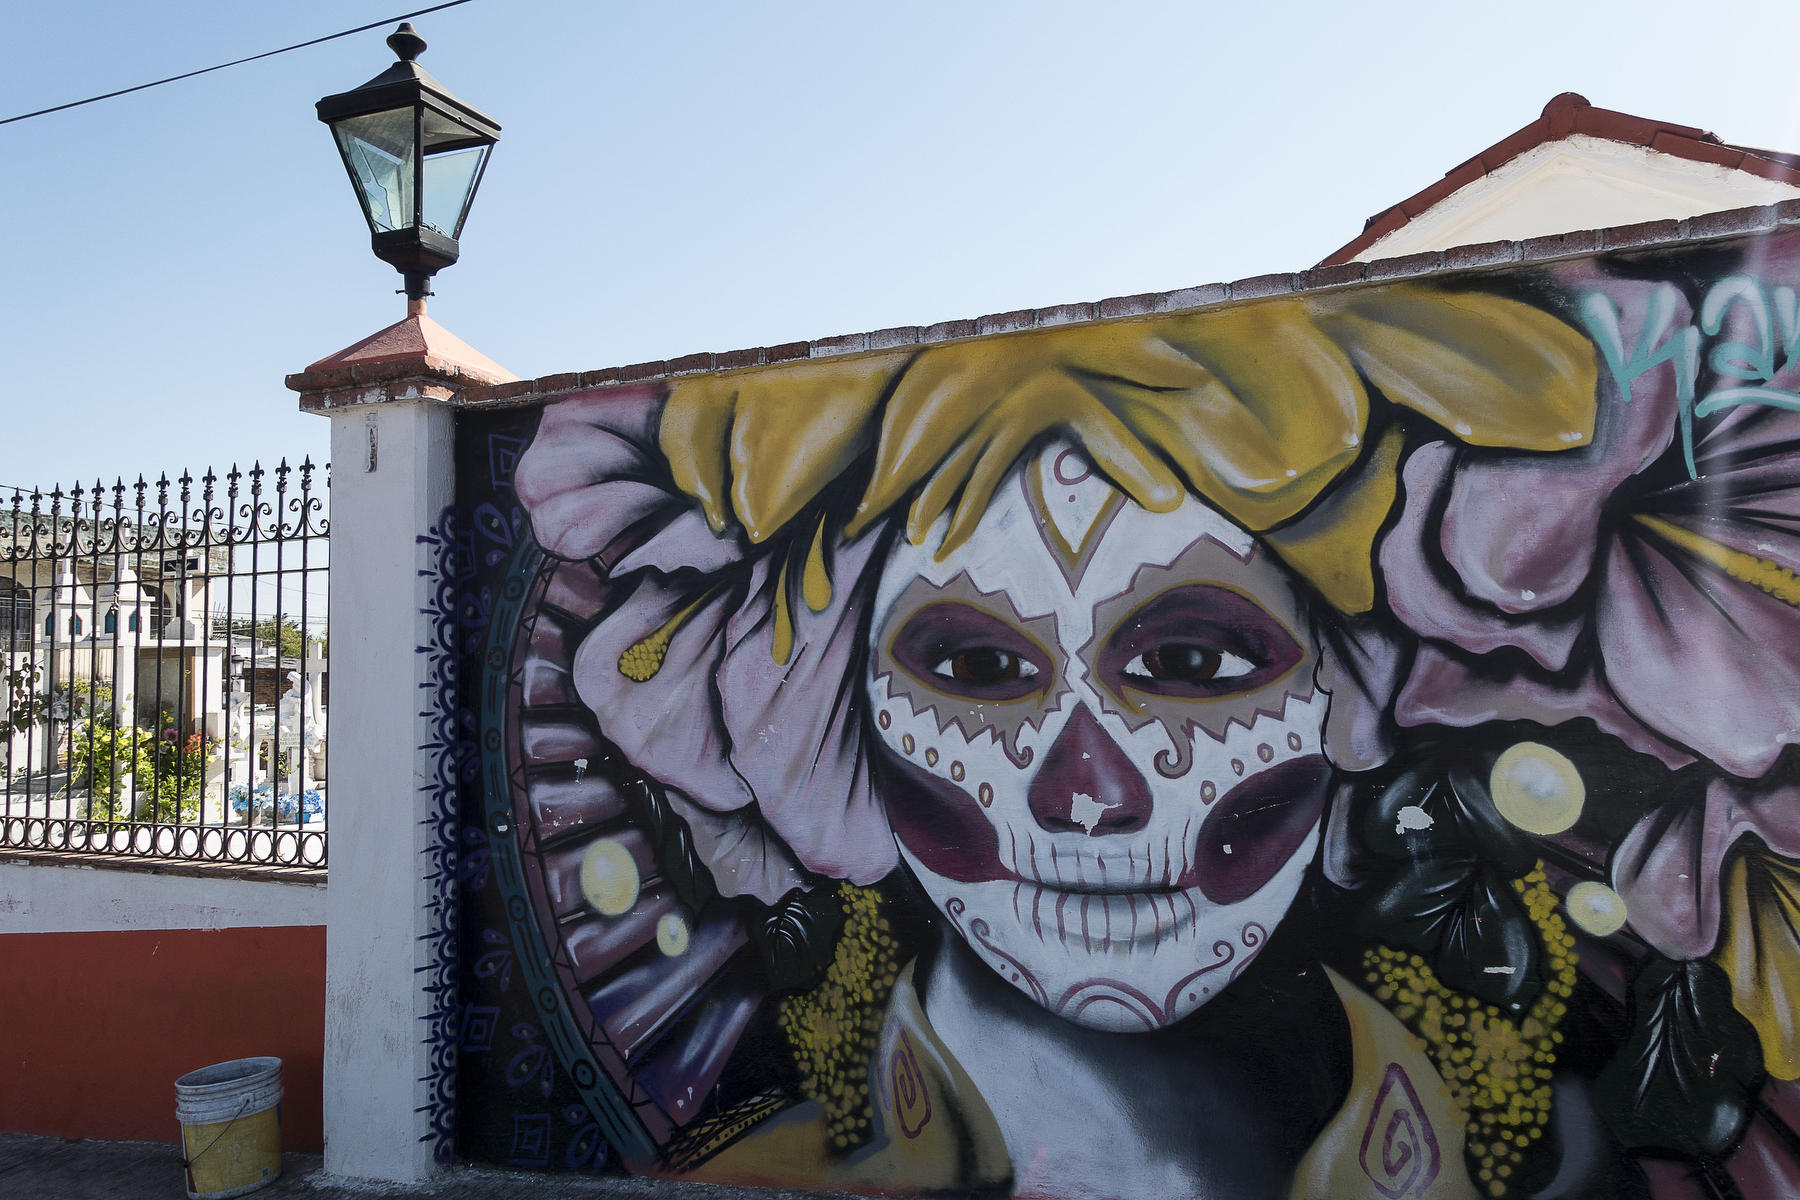 La CATRINA, symbol of The Day of the Dead on the wall of the cemetery.  : PUERTO VALLARTA - Wall Art & Bicycle Tour : Viviane Moos |  Documentary Photographer